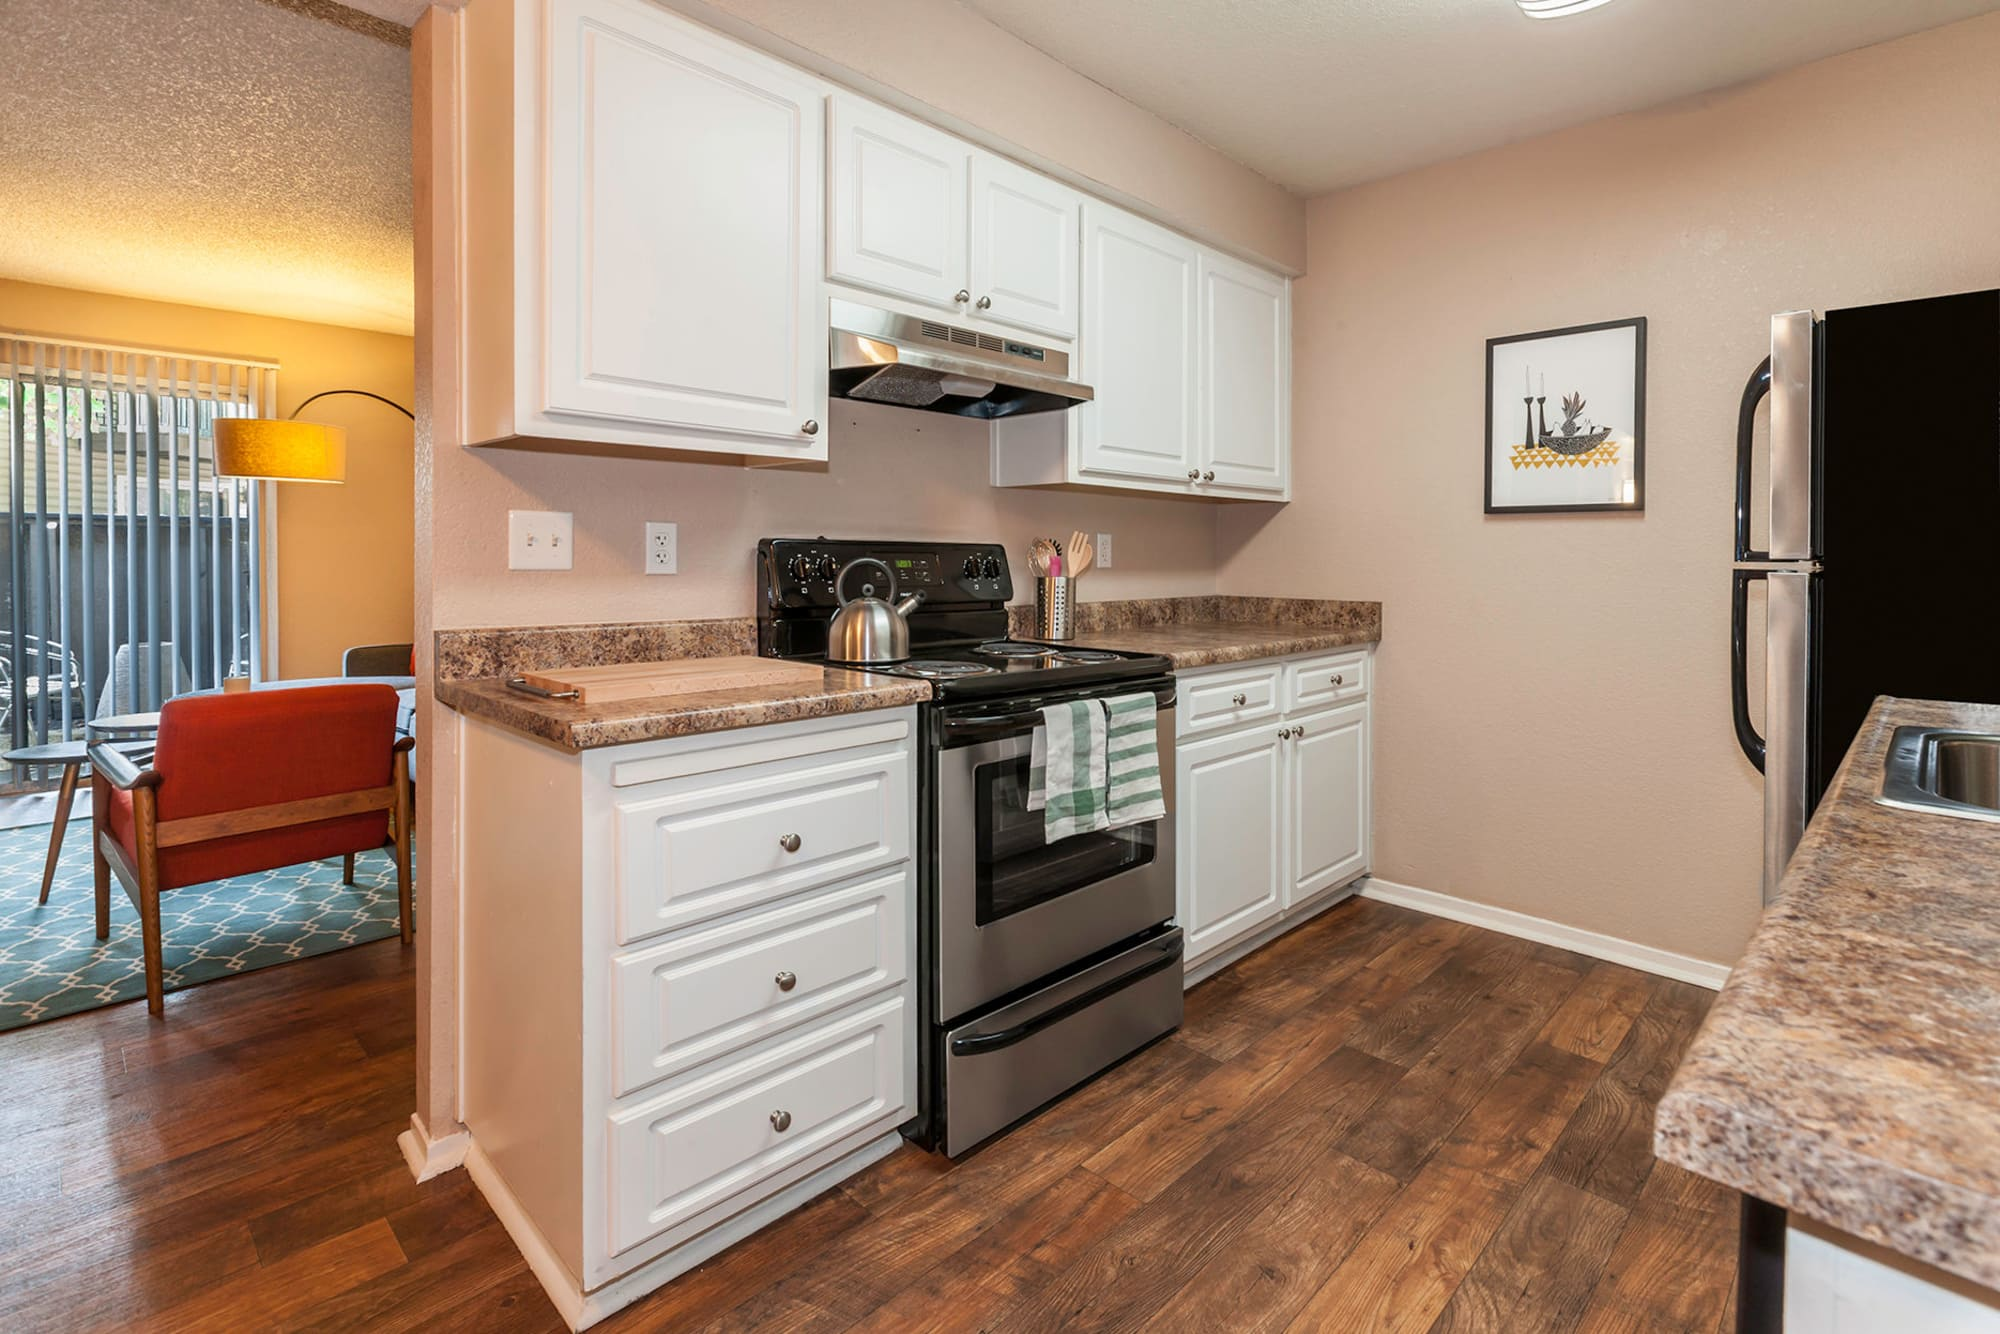 The Woodlands Apartments Renovated Kitchen, stainless steel appliances, light cabinets